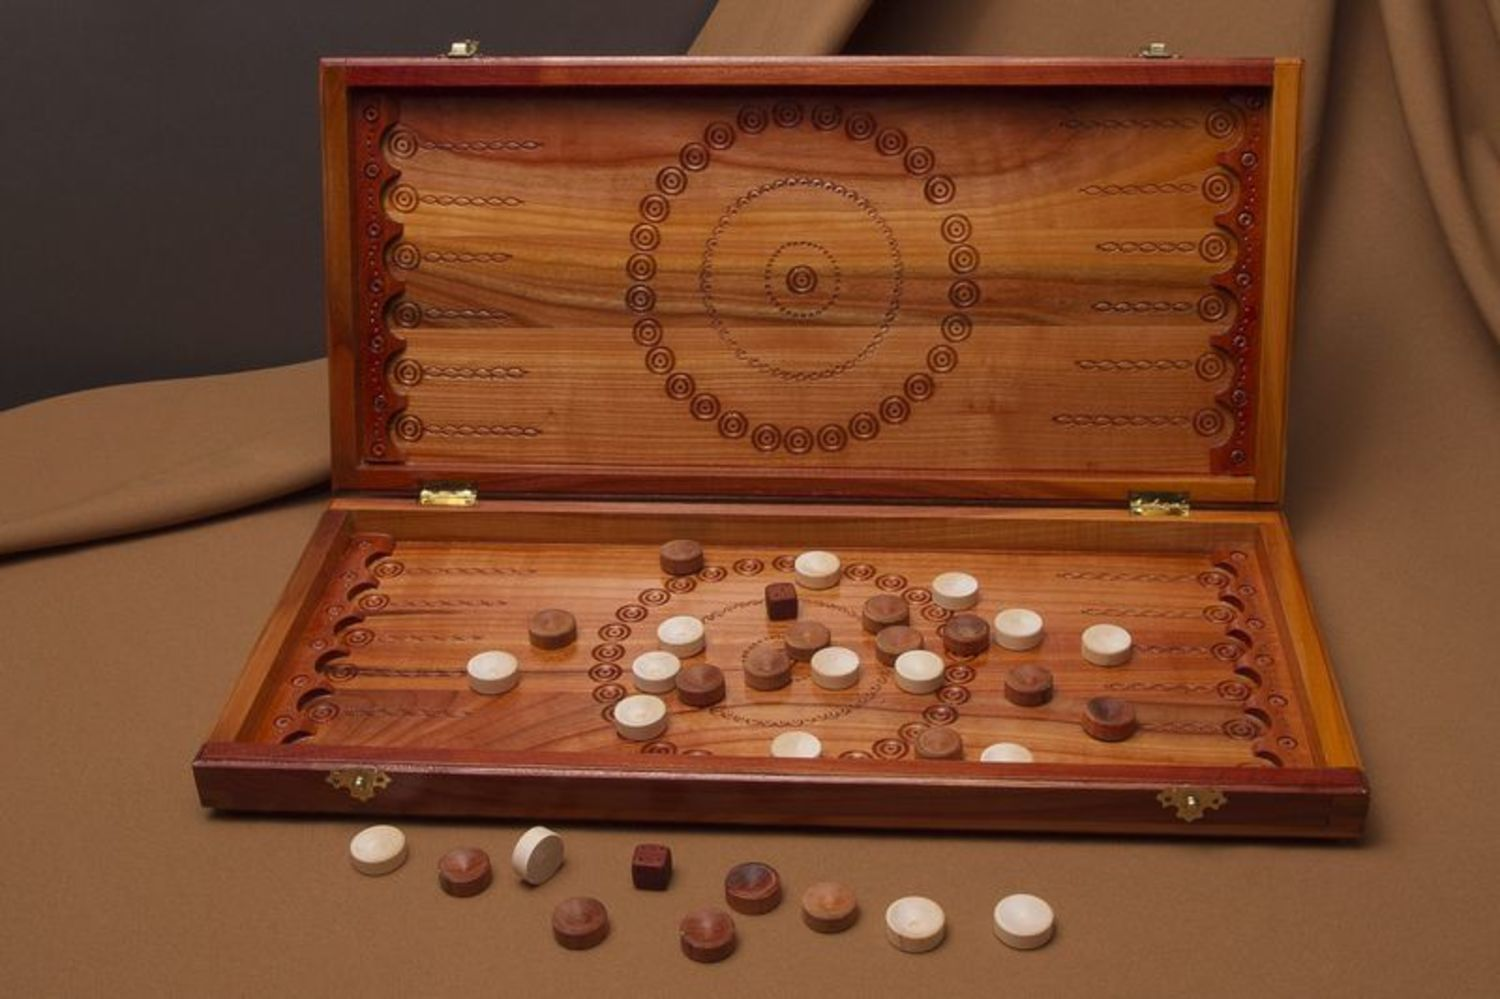 Wooden set for playing backgammon photo 1